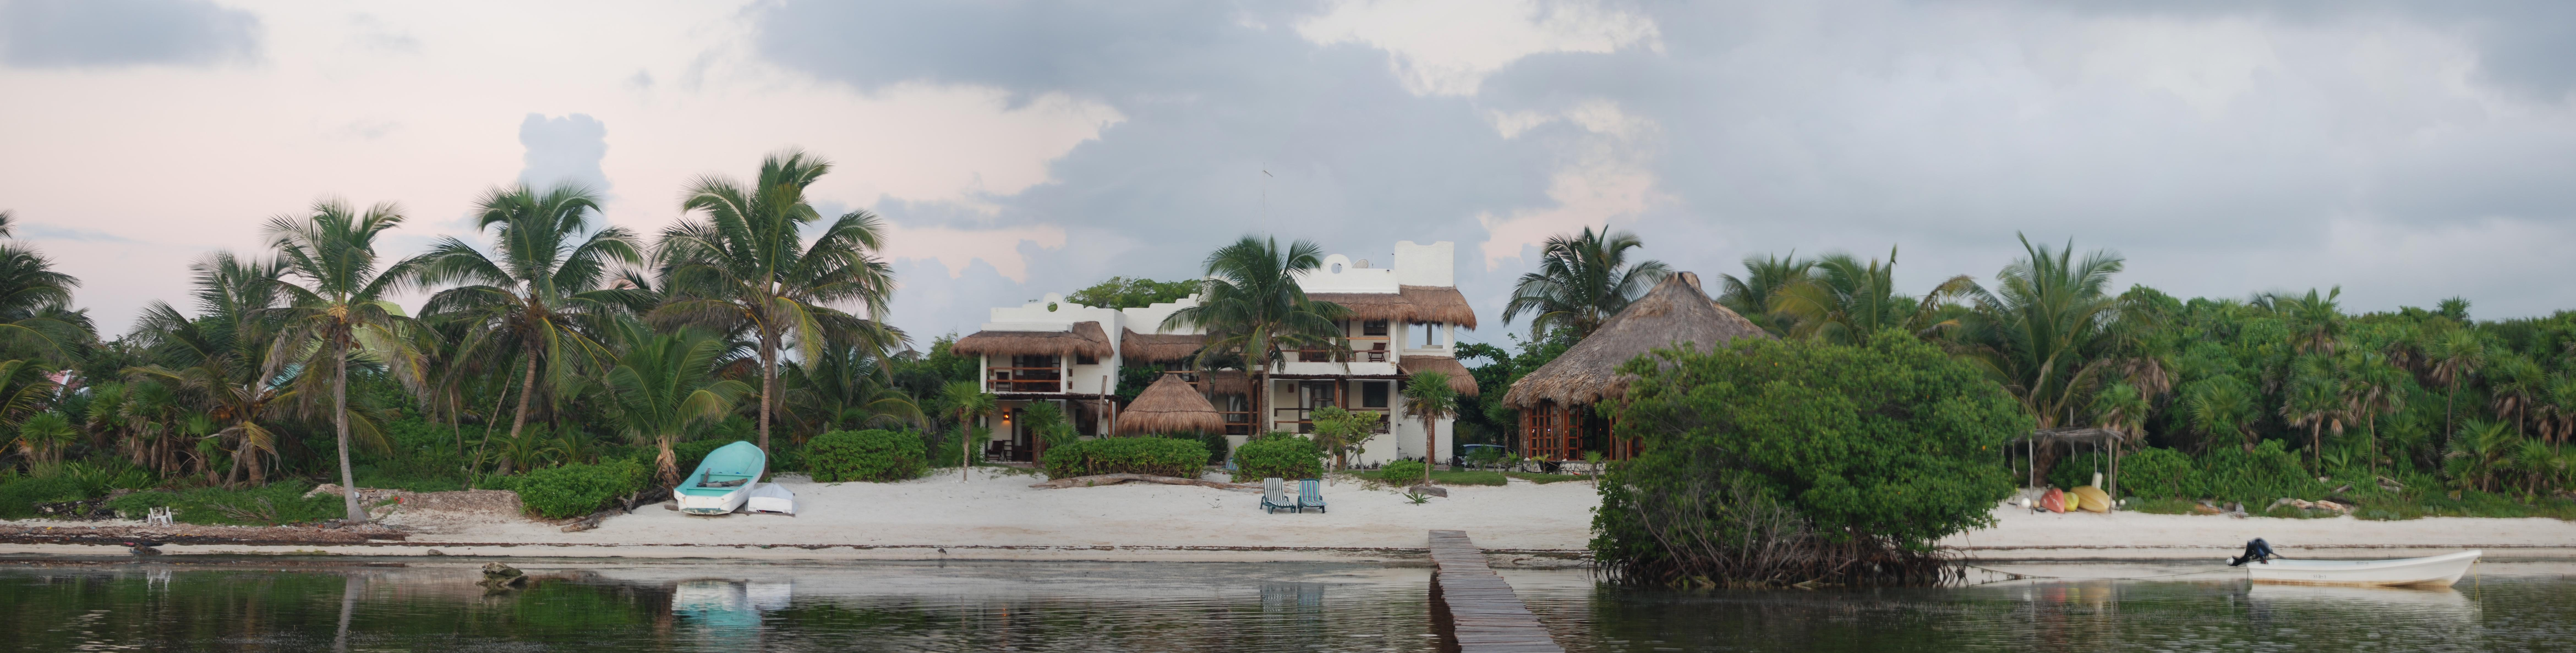 Hotel Tierra Maya